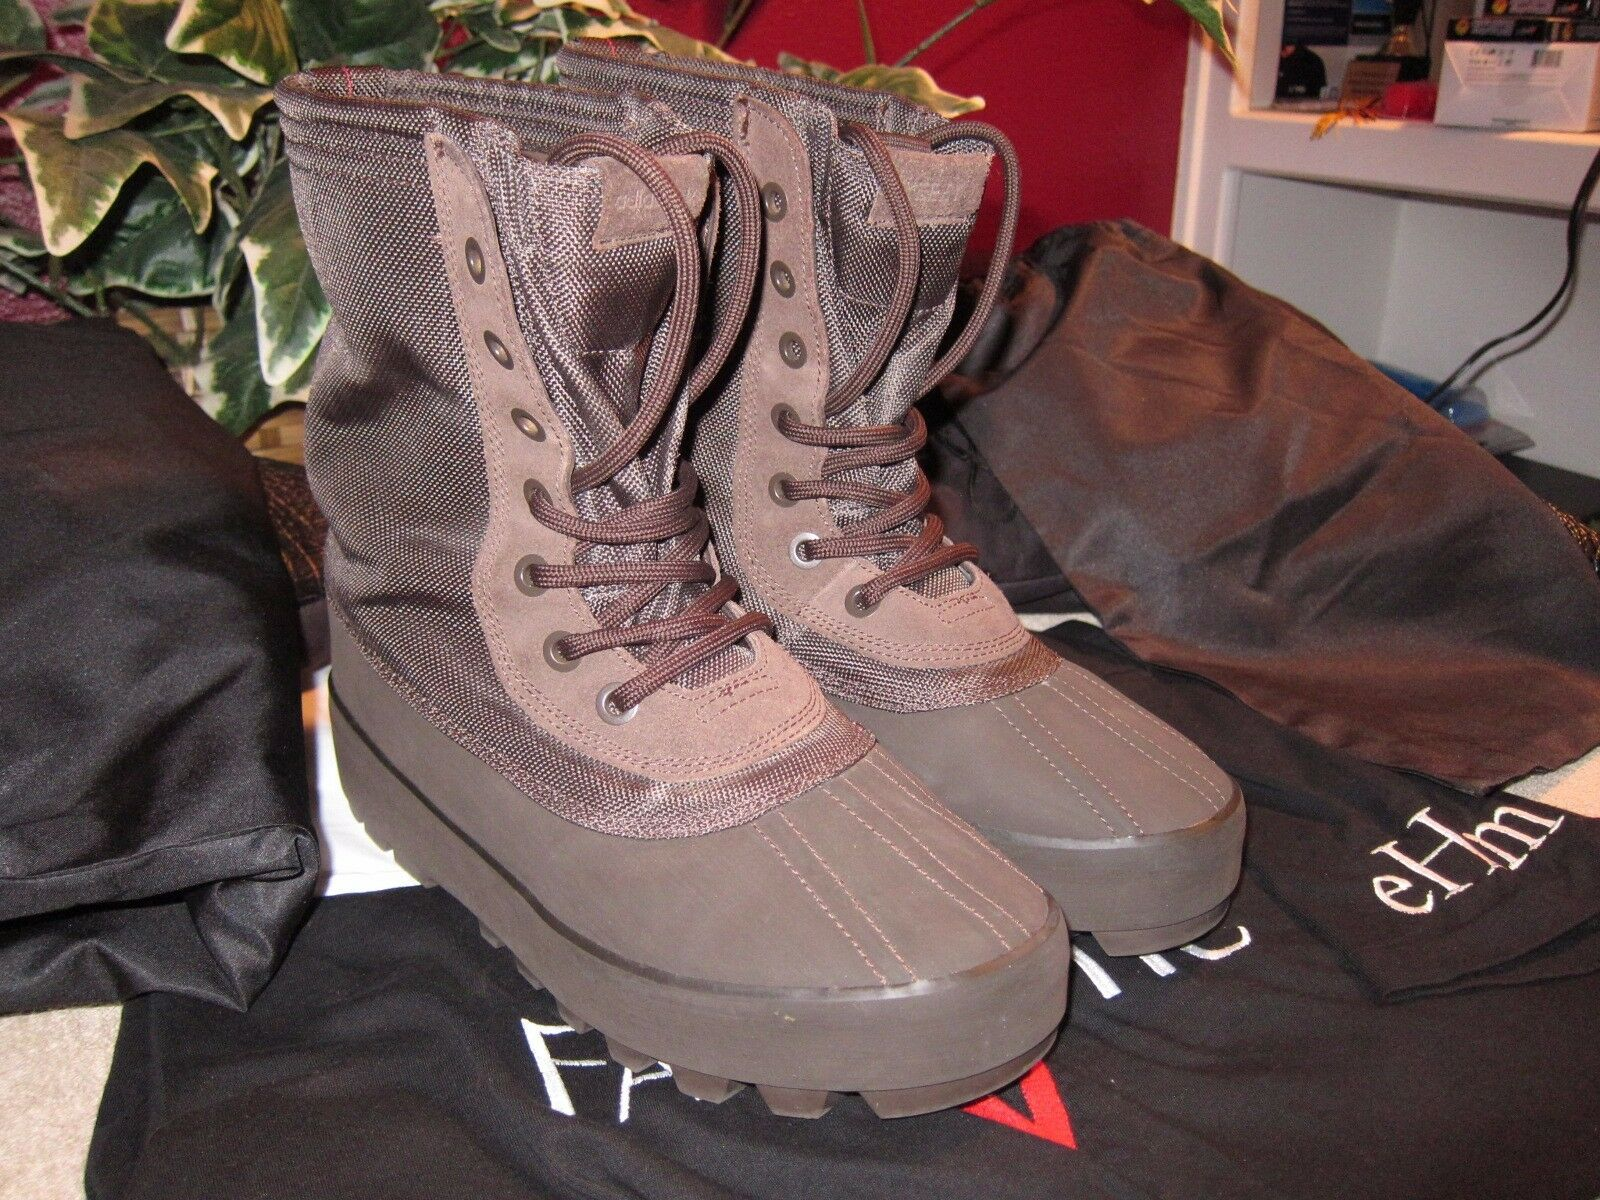 100% Authentic Adidas Yeezy Pirate Black 950 Boot Men Boost 350 Price reduction